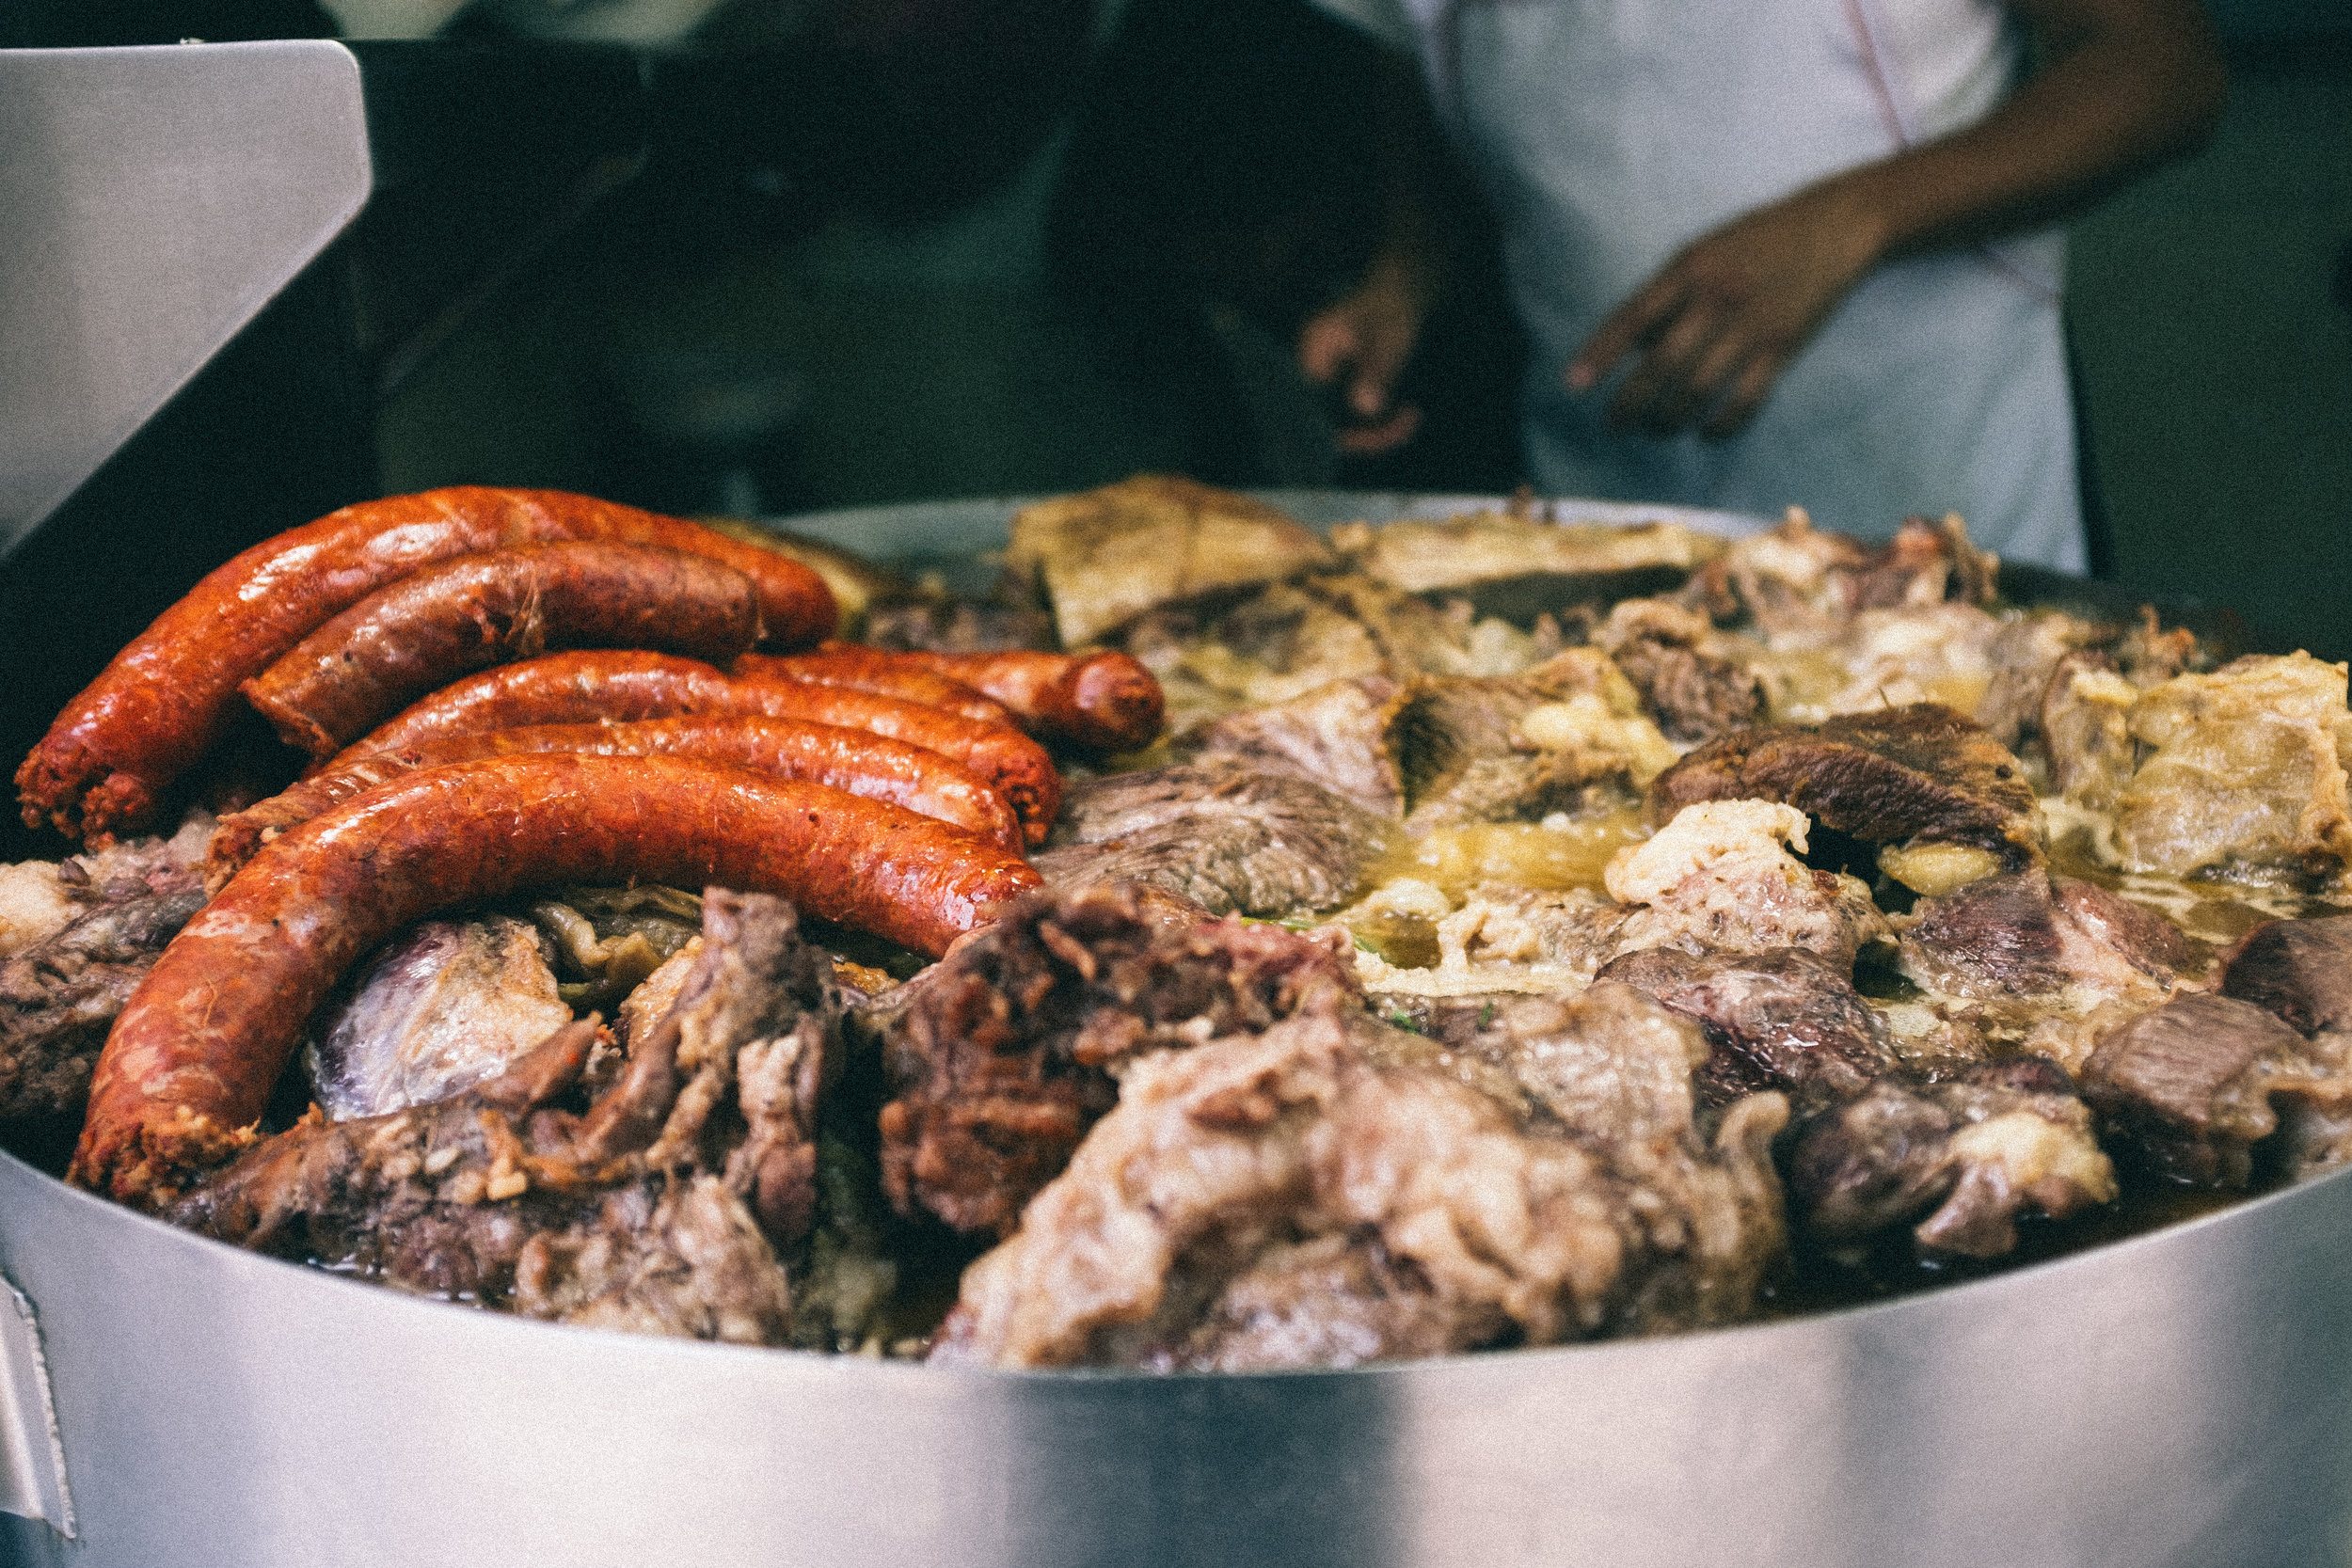 Typical meaty Mexican street food selection